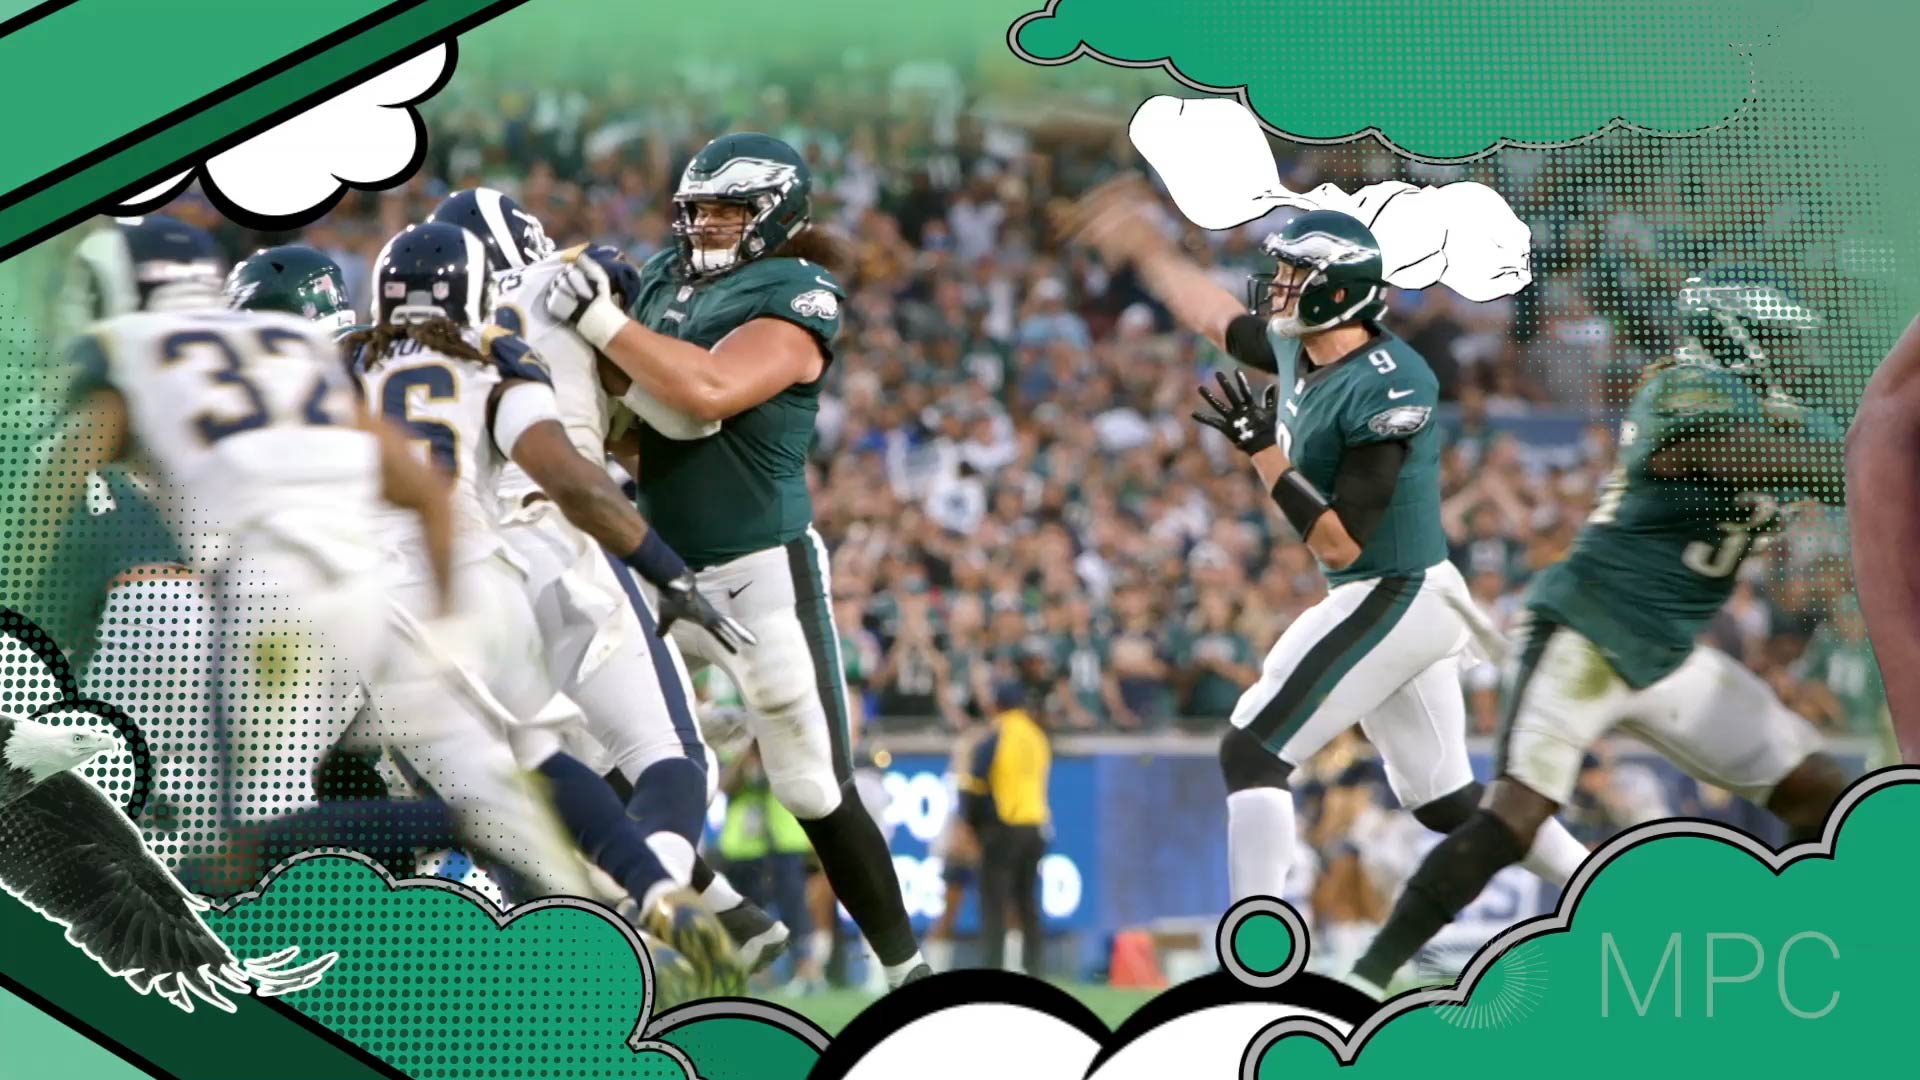 NFL PLAYOFF PICTURE_05.jpg